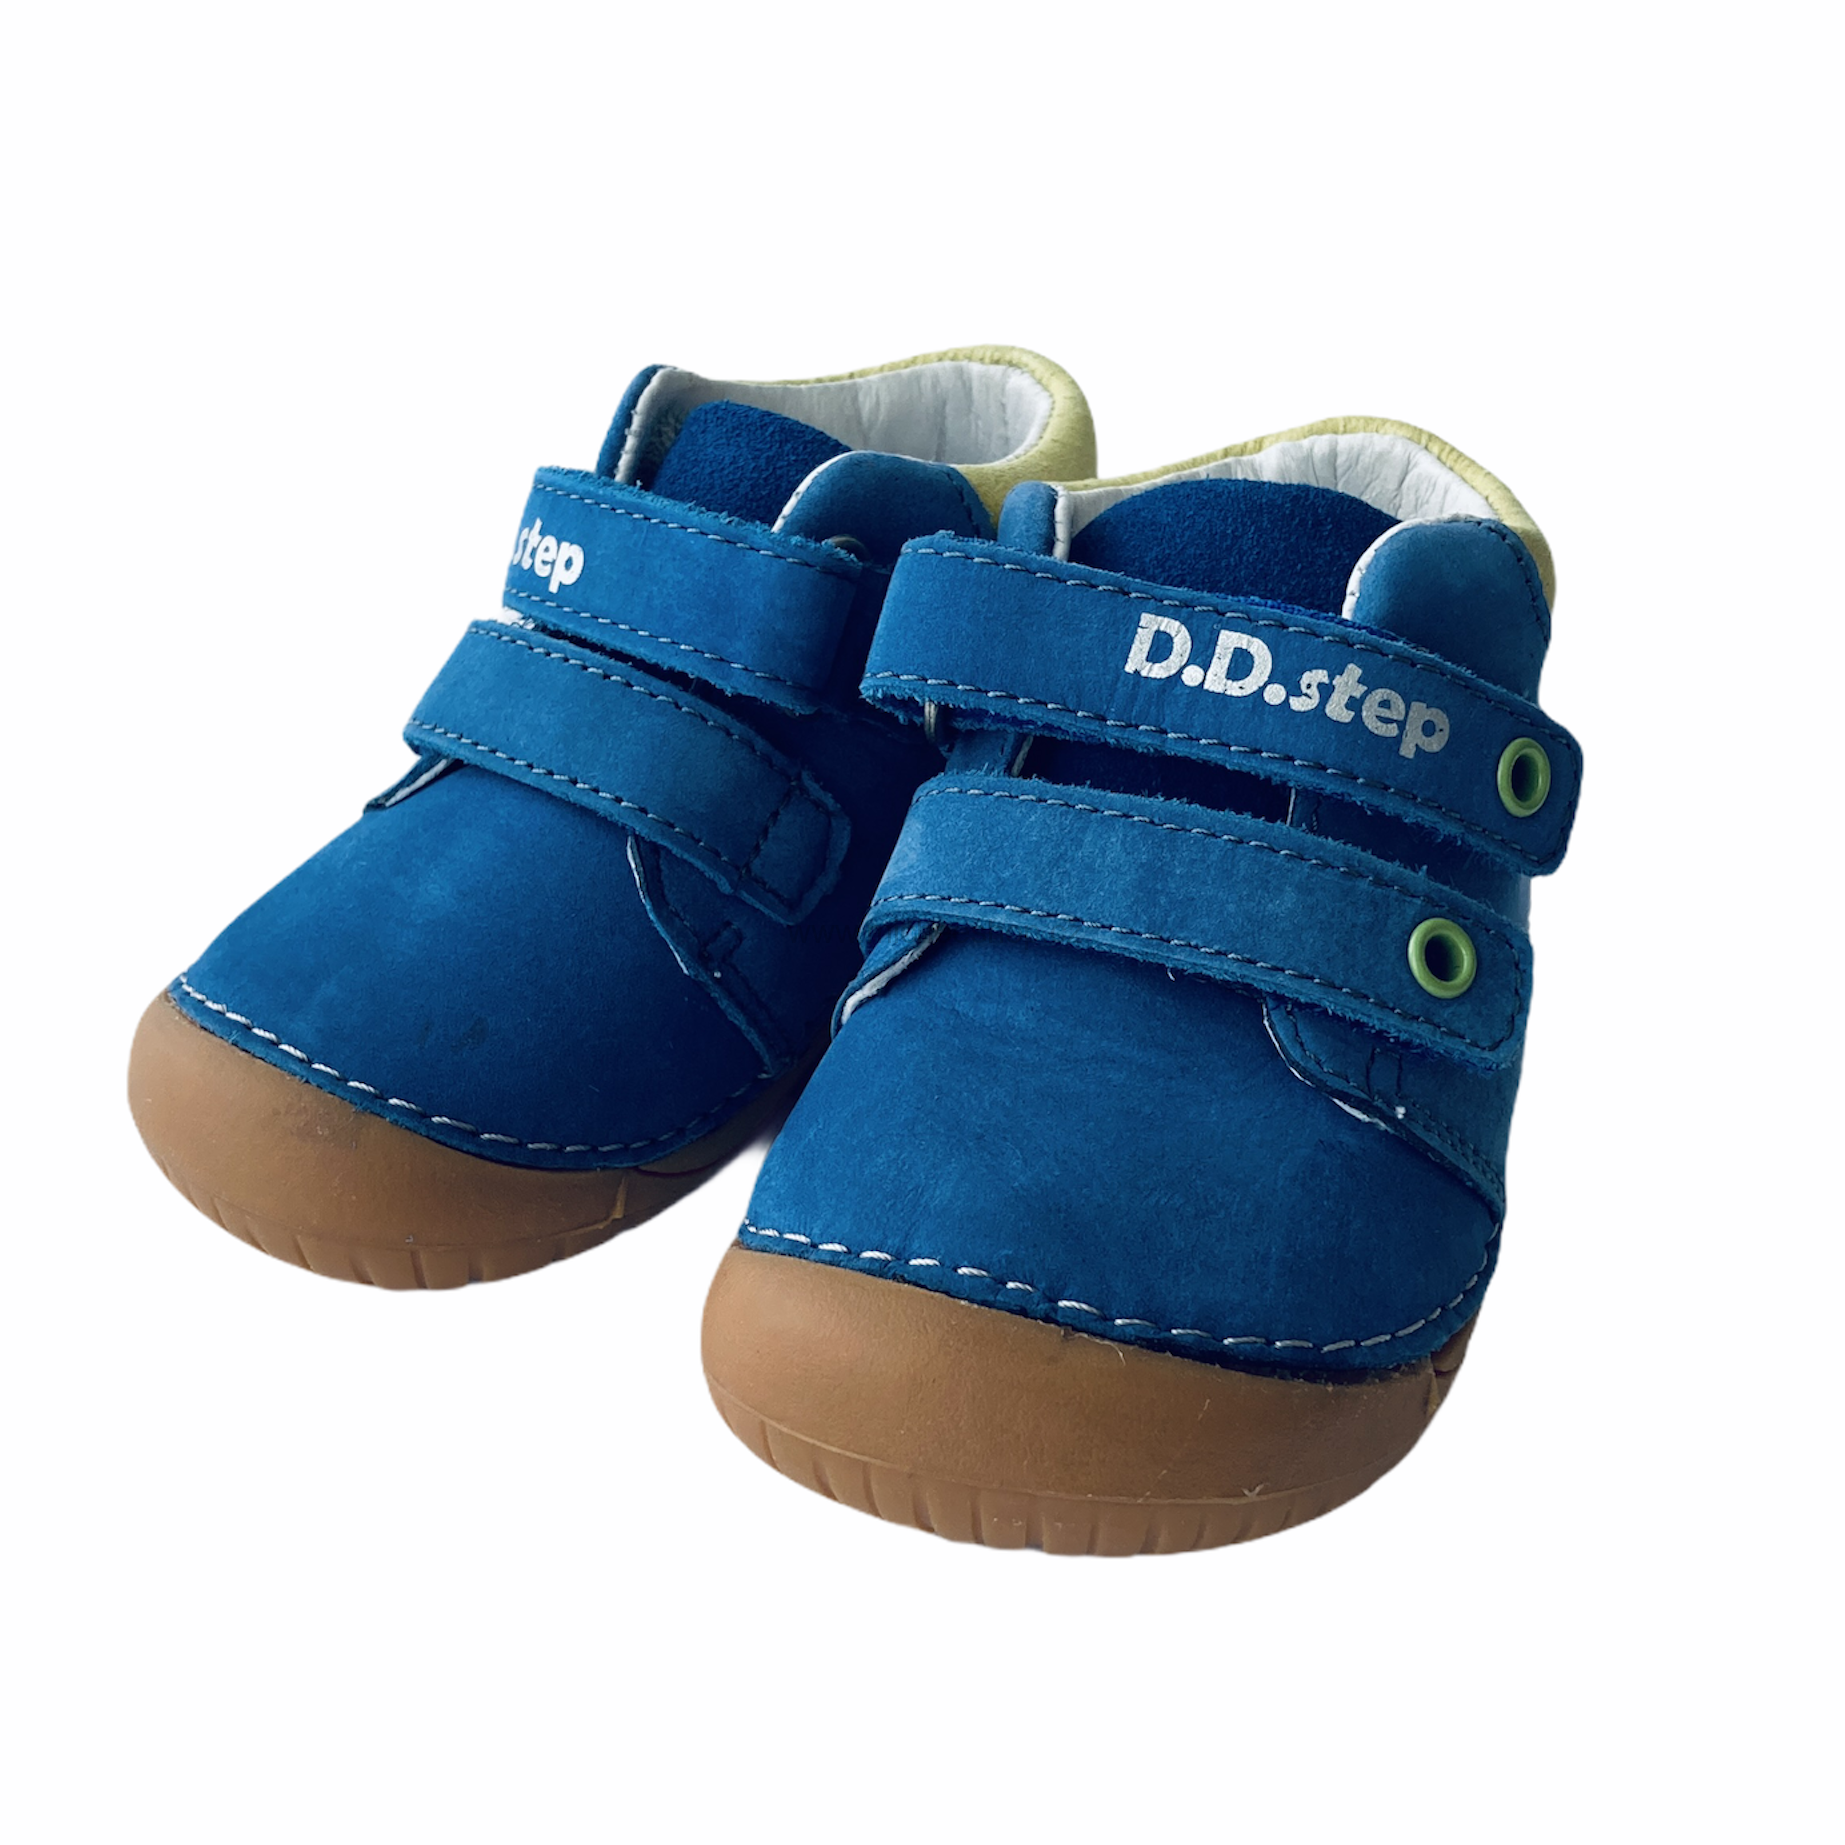 D.D.Step Bermuda Blue 070-387